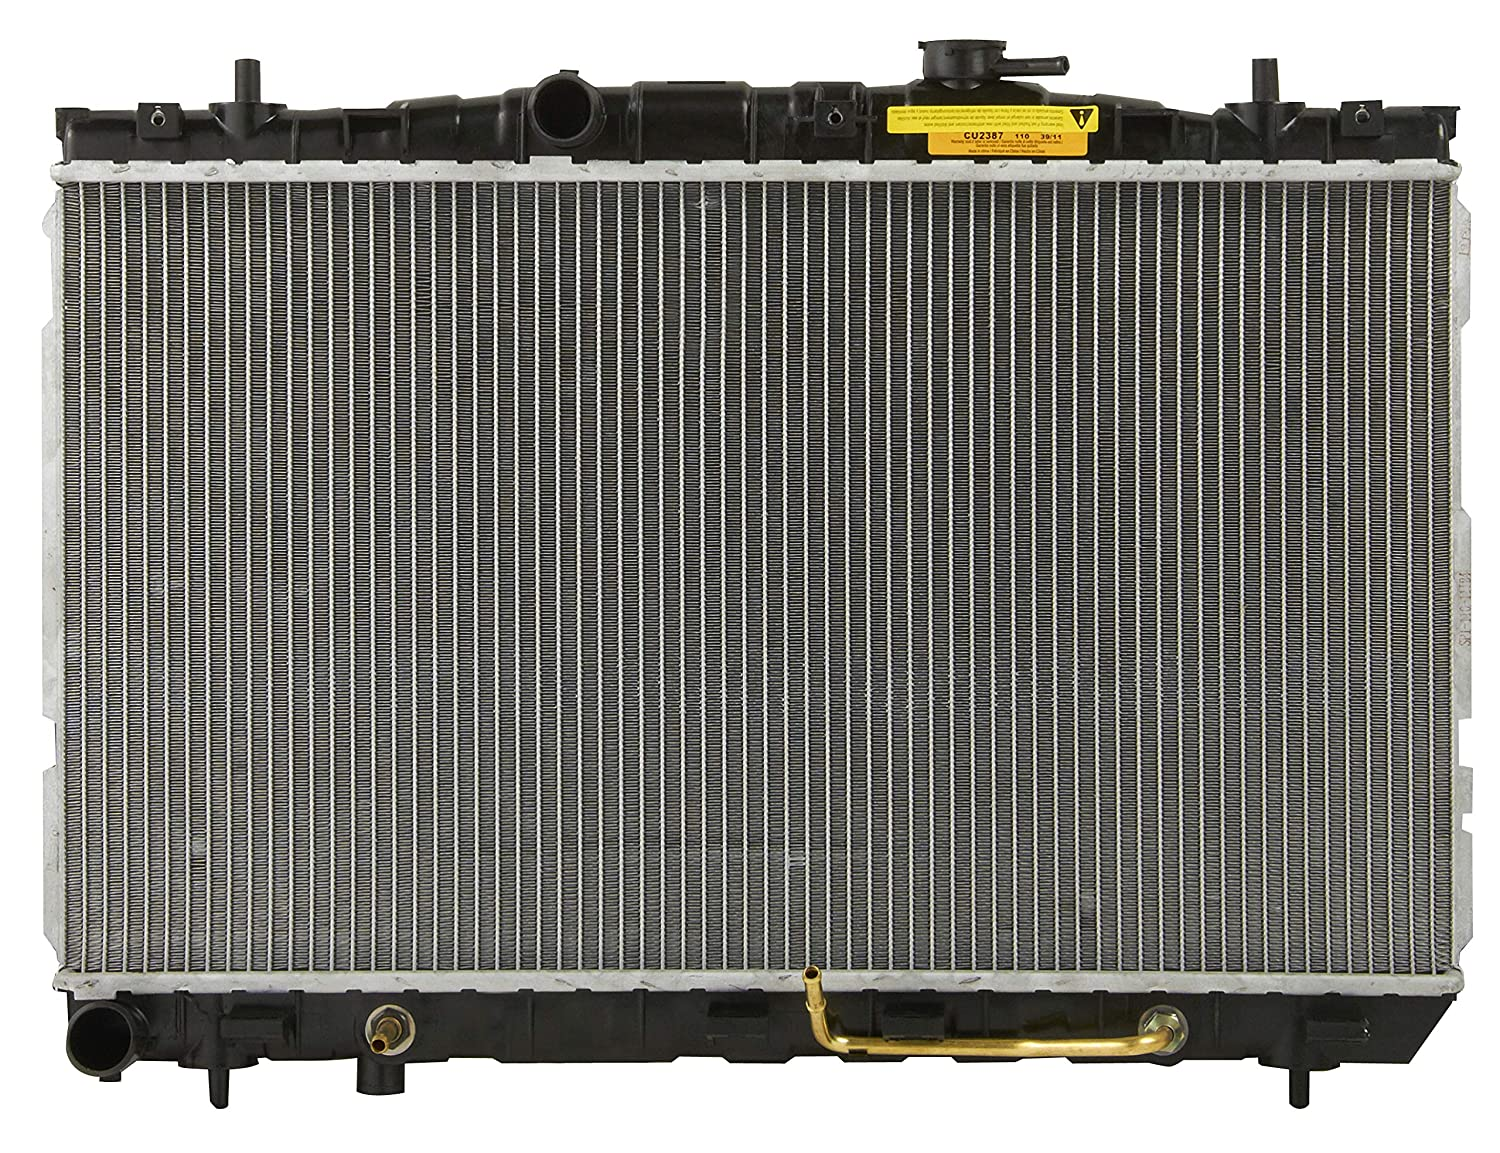 Spectra Premium Complete Radiator Cu2387 Automotive 2002 Hyundai Sonata 20 Fan Stopped Blowing